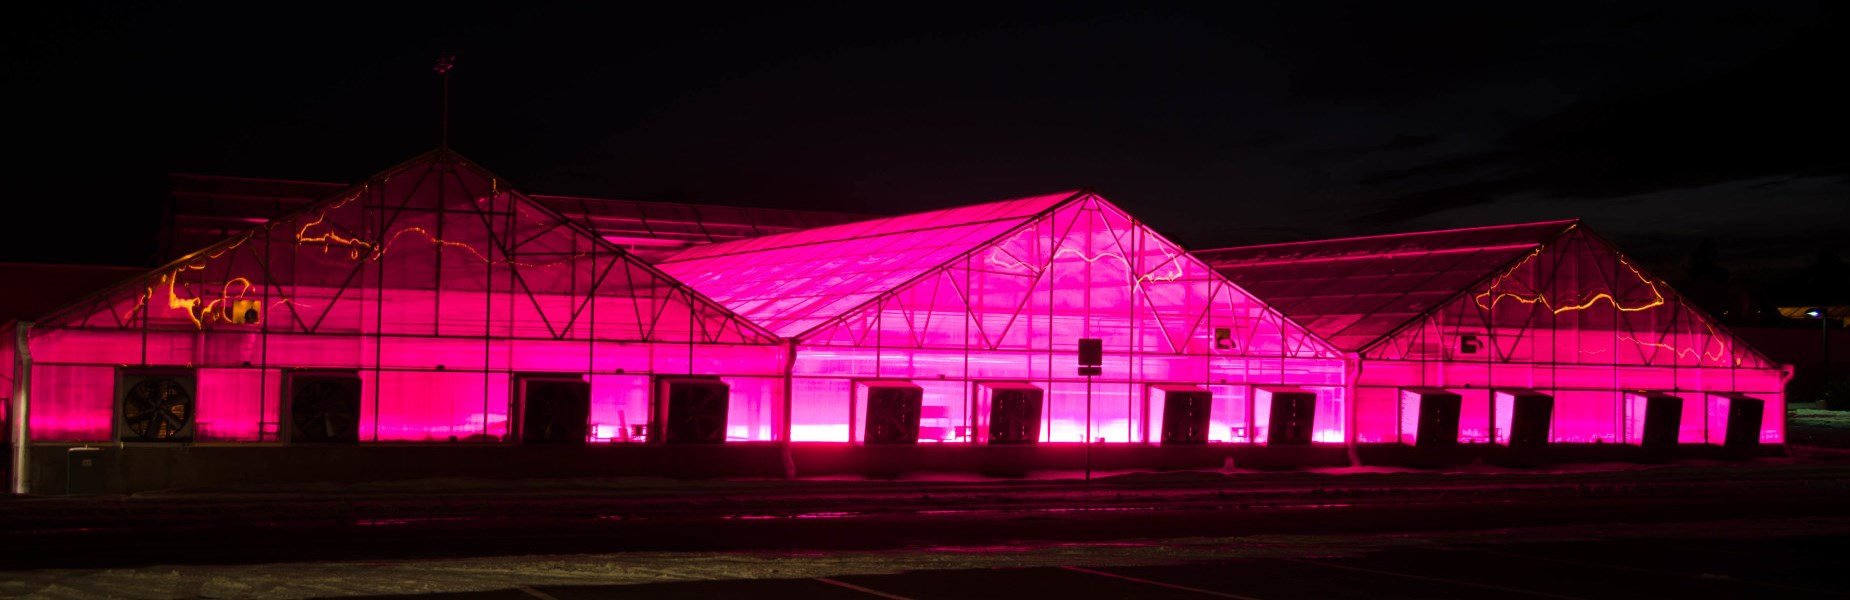 FIG. 1 – Horticultural lighting in greenhouses. (Source: Colorado State University)